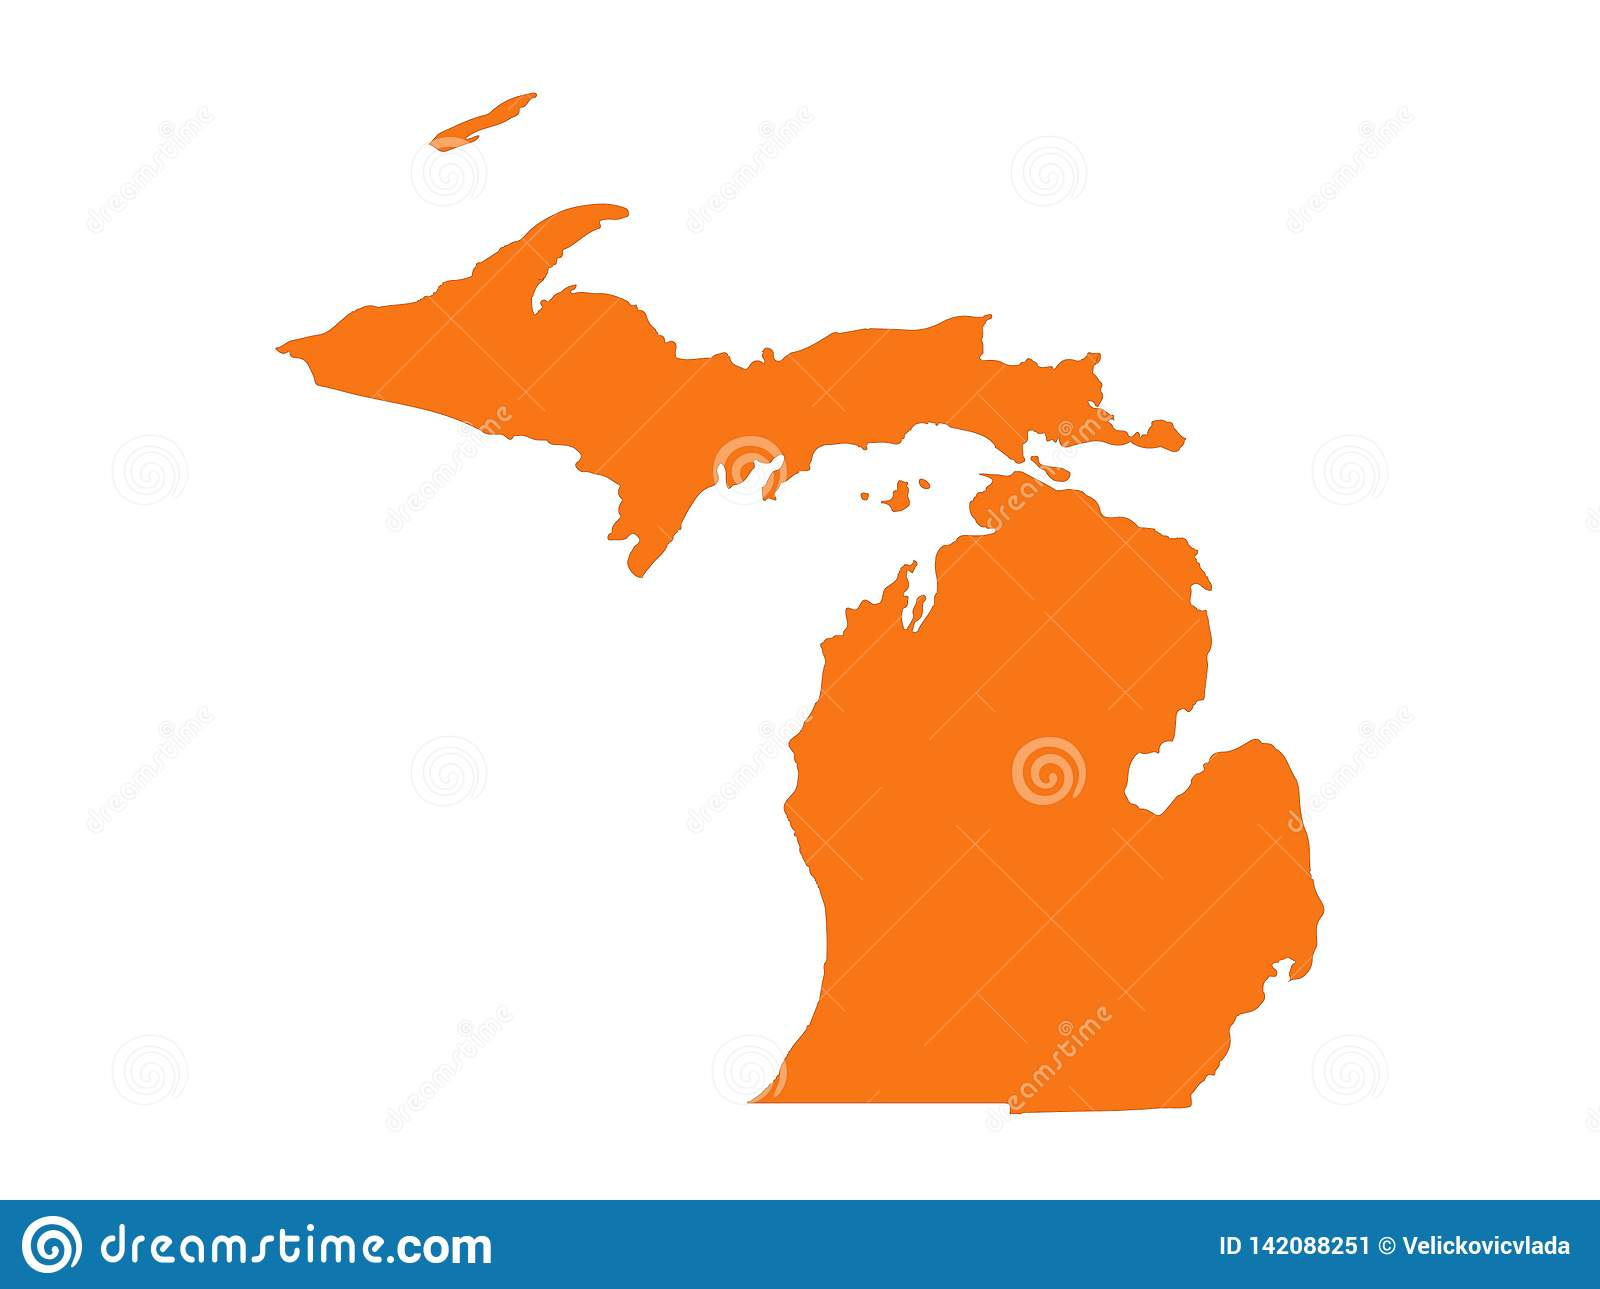 Michigan Map - State In The United States Stock Vector ...